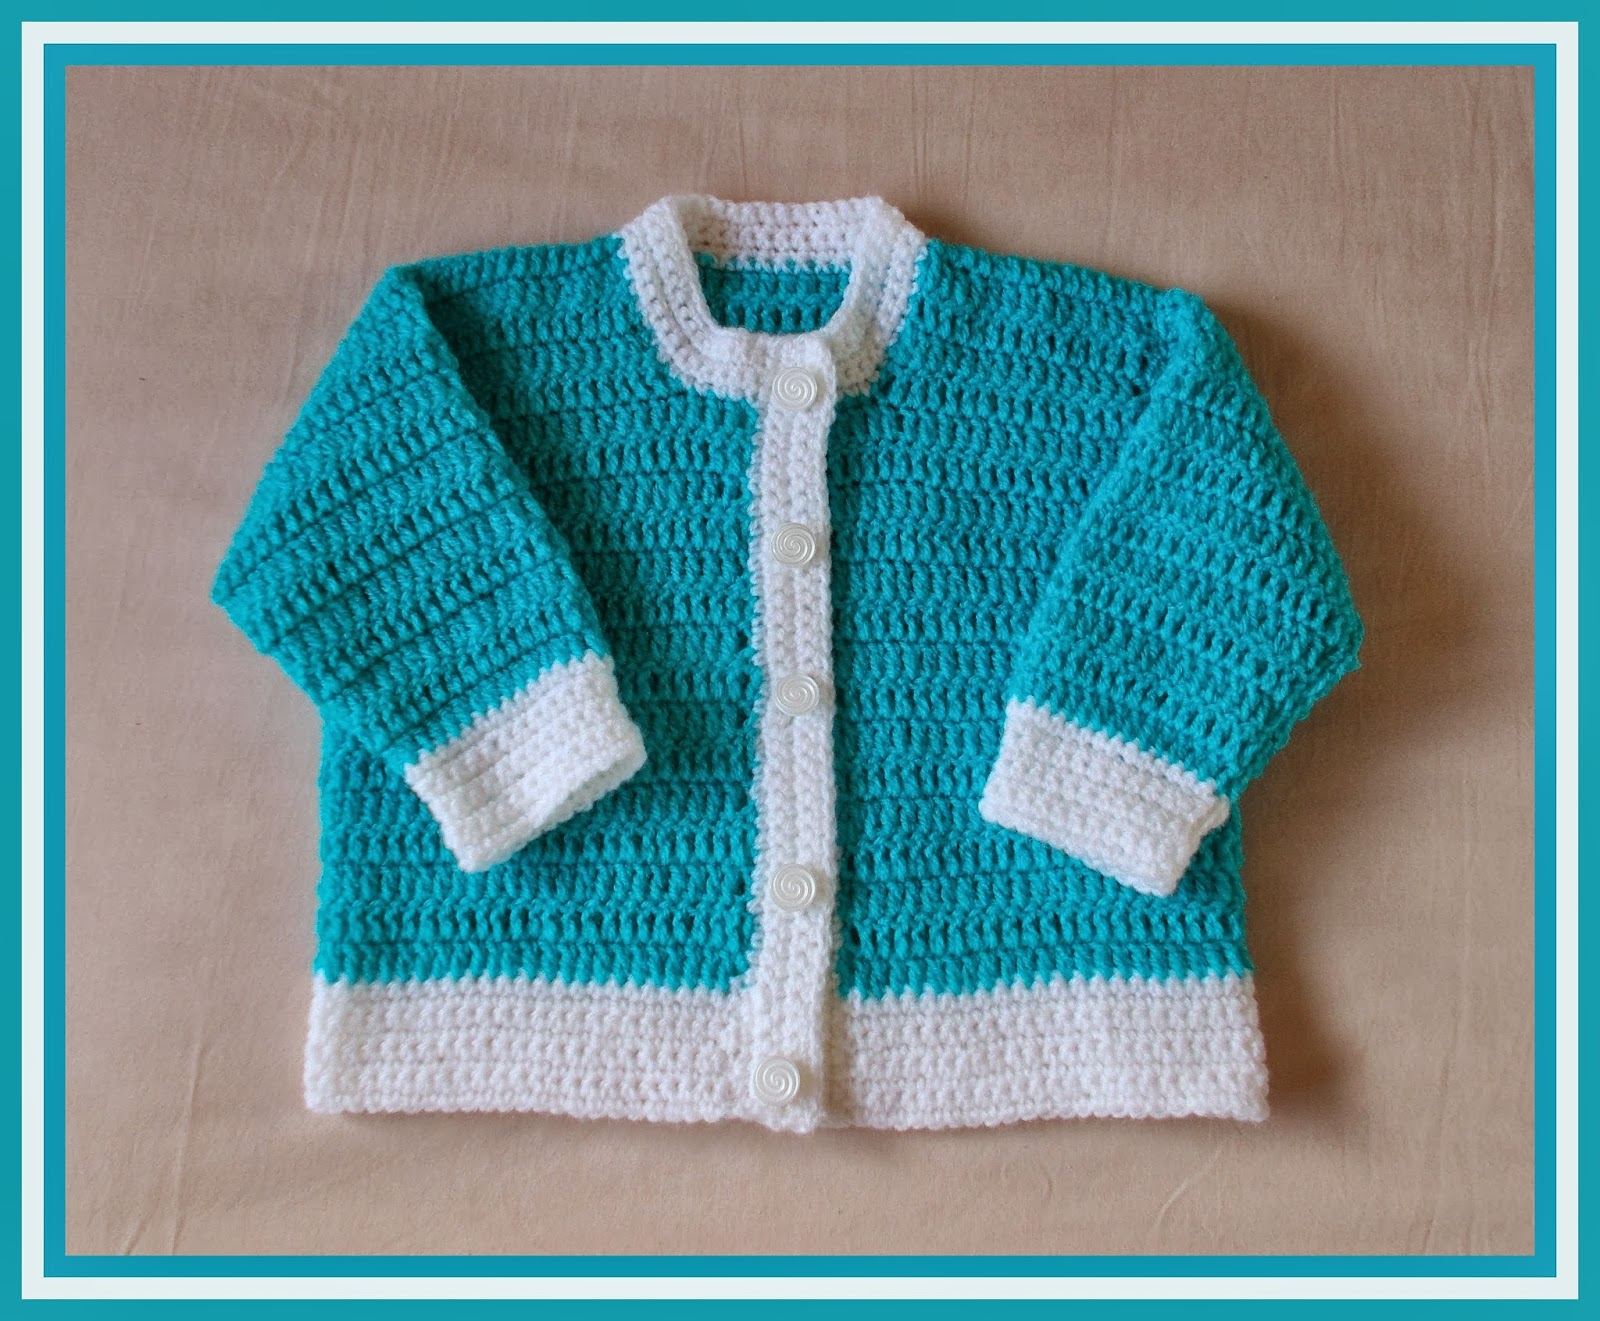 1b6deb5ece85 ... Baby Cardigan Jacket  sells 68bad 71e76 Mariannas Lazy Daisy Days . ...